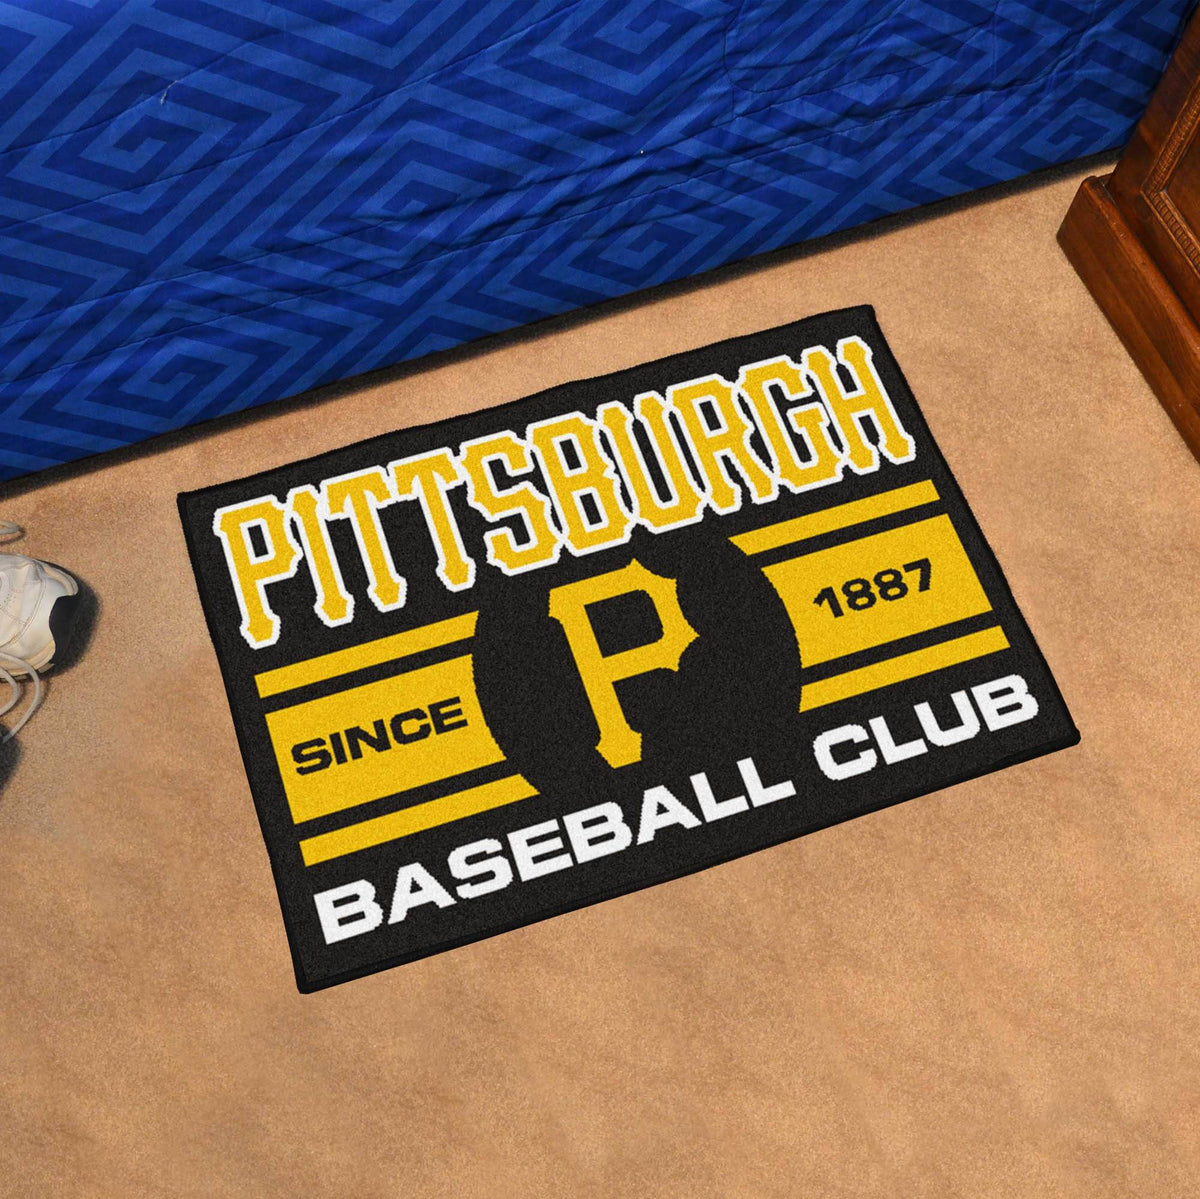 MLB - Uniform Starter Mat MLB Mats, Rectangular Mats, Uniform Starter Mat, MLB, Home Fan Mats Pittsburgh Pirates